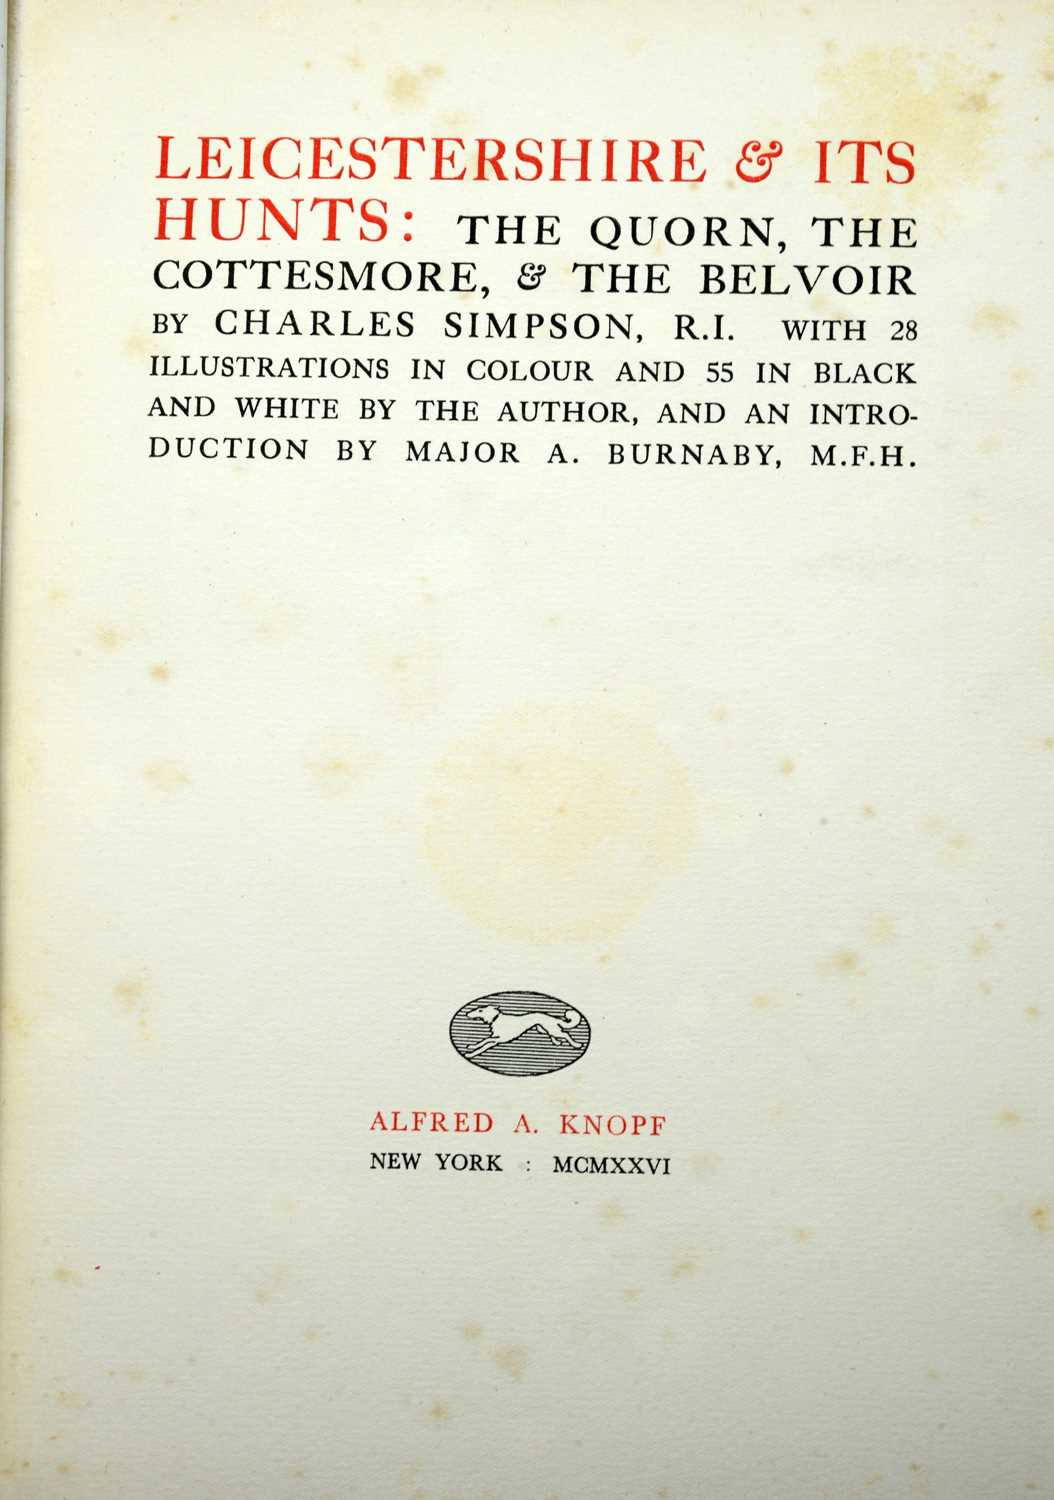 Books on Hunting - Image 6 of 7